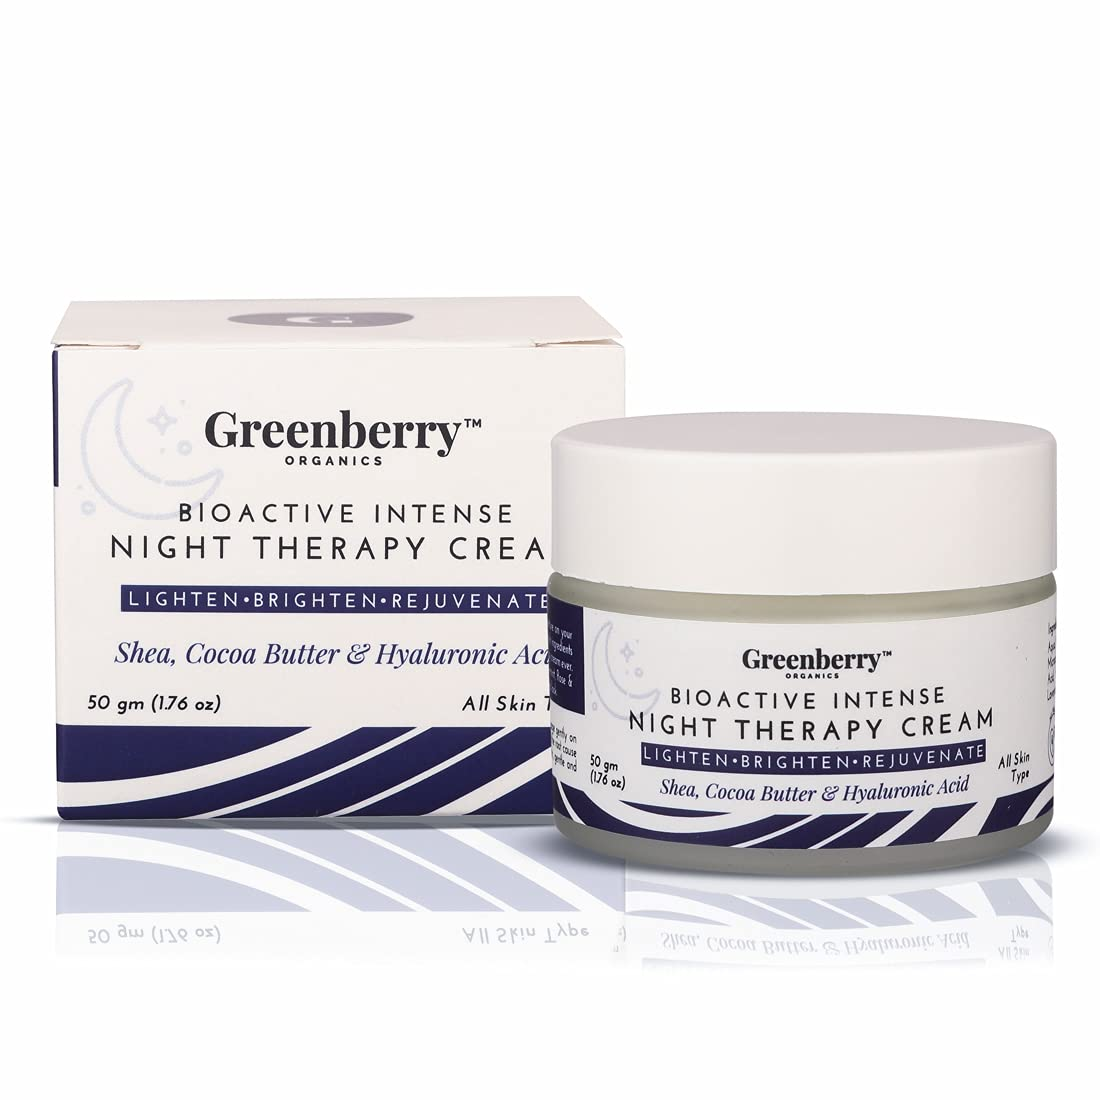 Greenberry Organics Bio Active Intense Night Therapy Cream with Shea, Cocoa Butter & Hyaluronic Acid, Rejuvenate, Anti-Ageing, Wrinkle Control